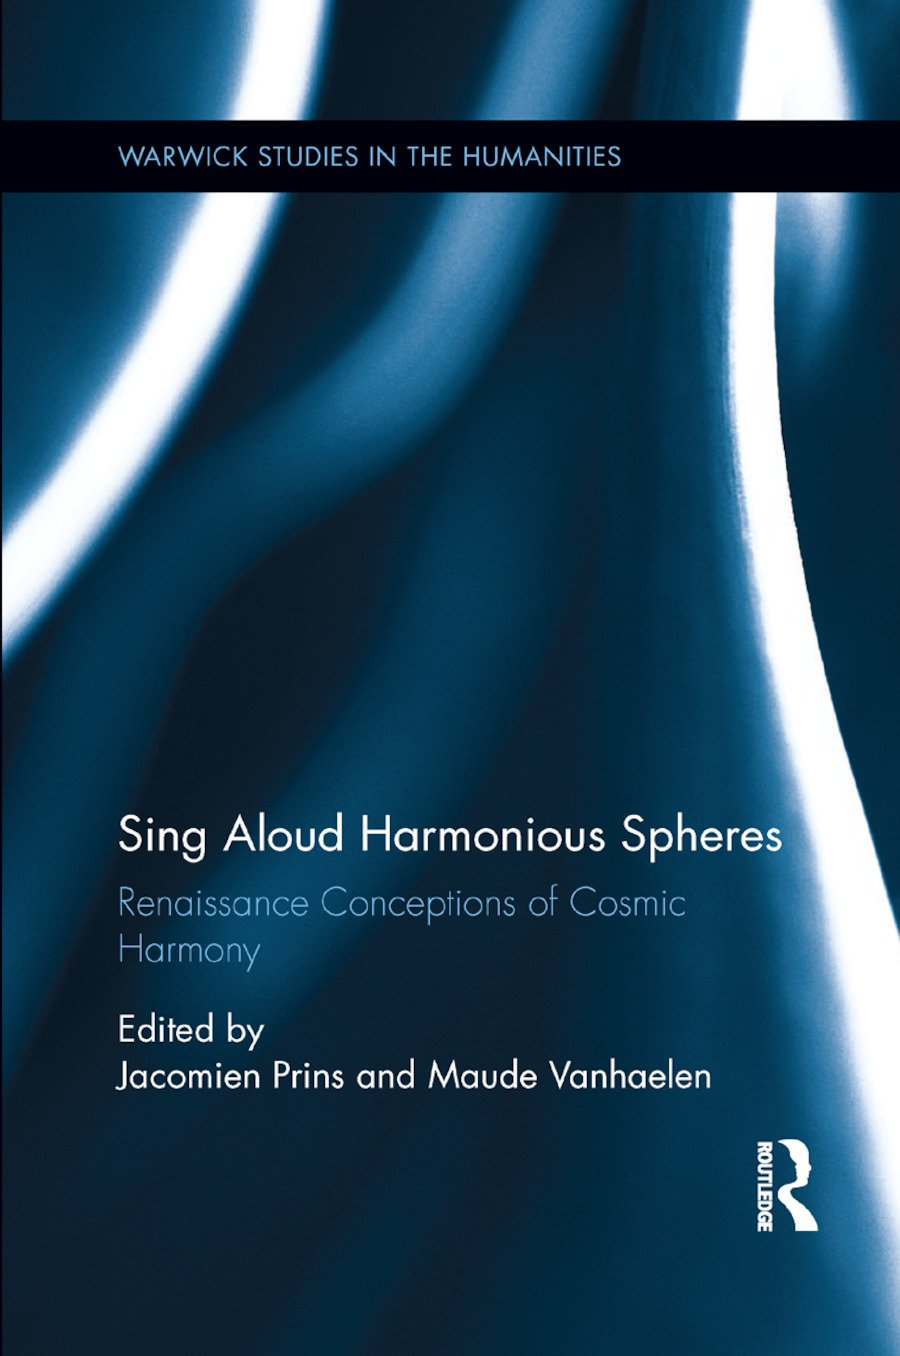 Sing Aloud Harmonious Spheres: Renaissance Conceptions of Cosmic Harmony book cover